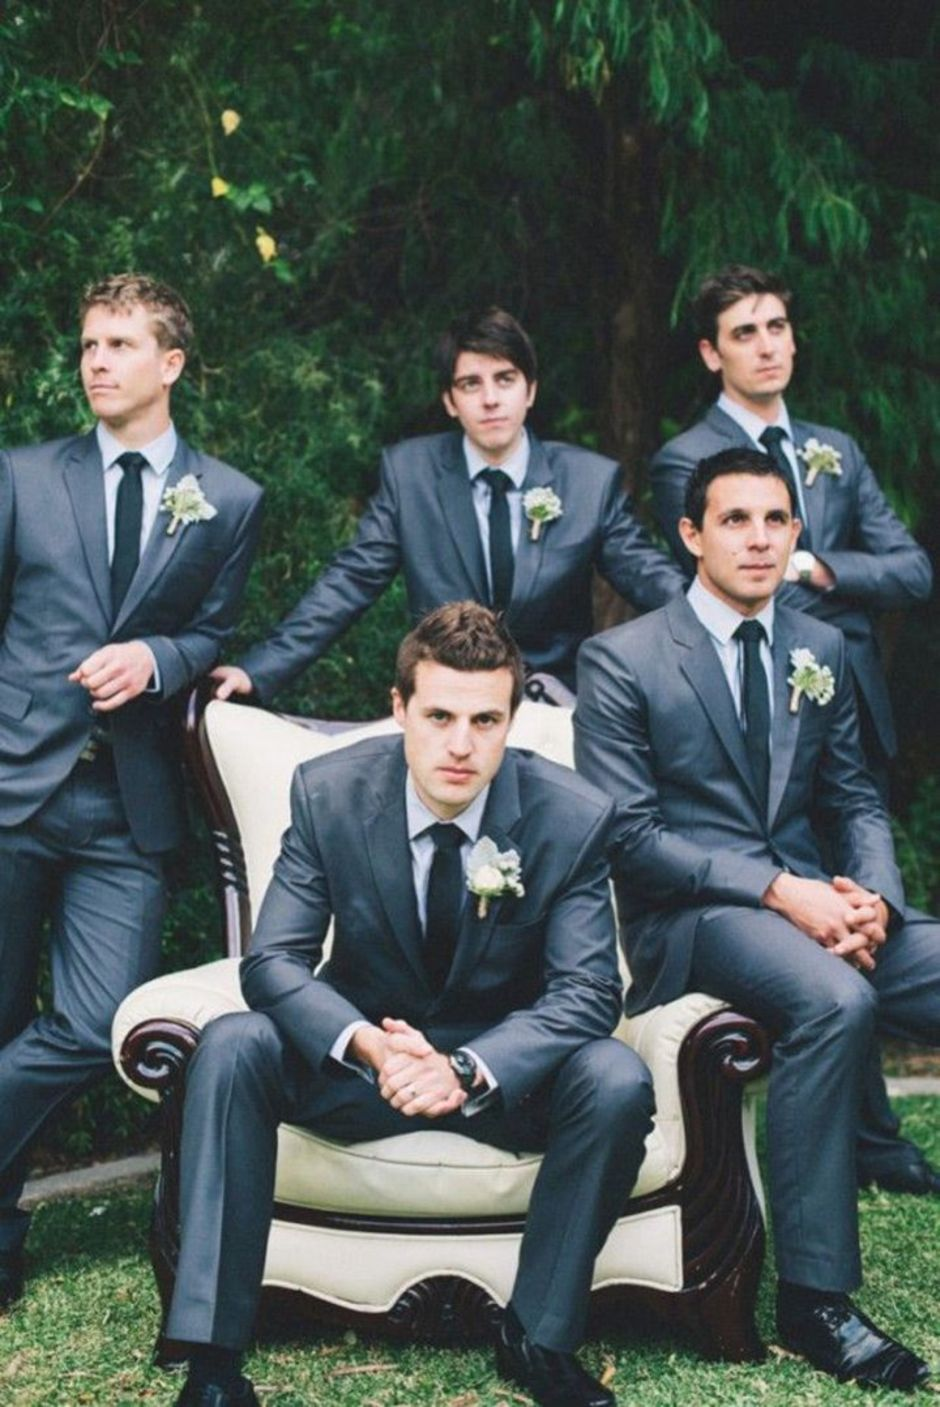 100+ Groomsmen Photos Poses Ideas You Can't Miss 70